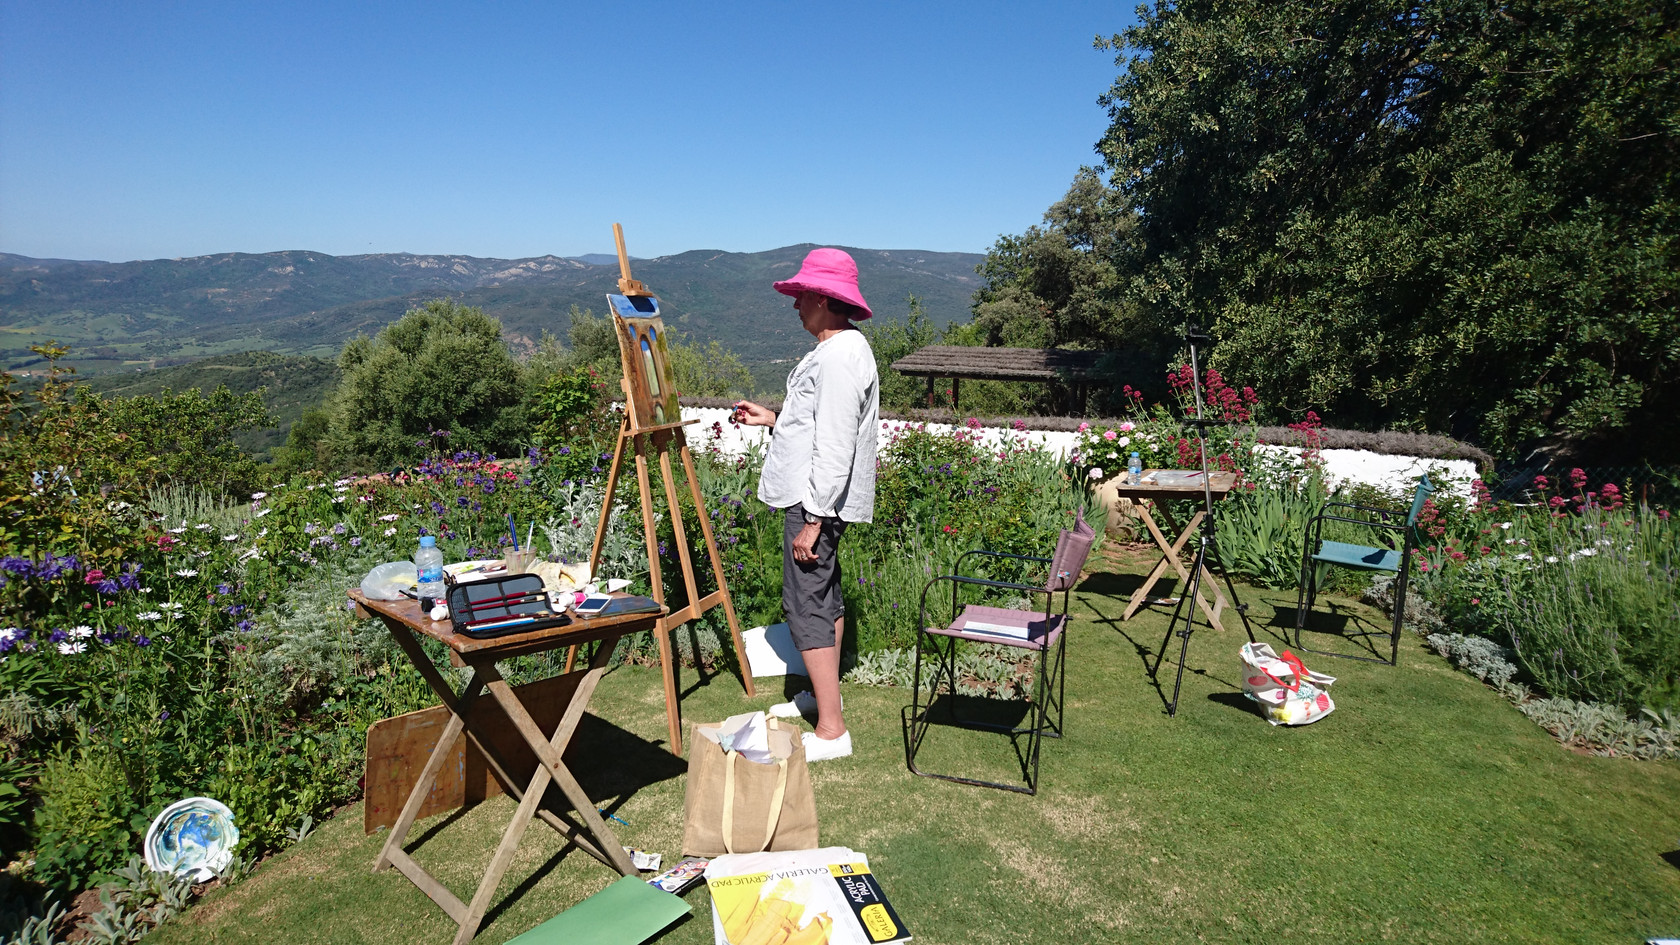 Painting in the garden